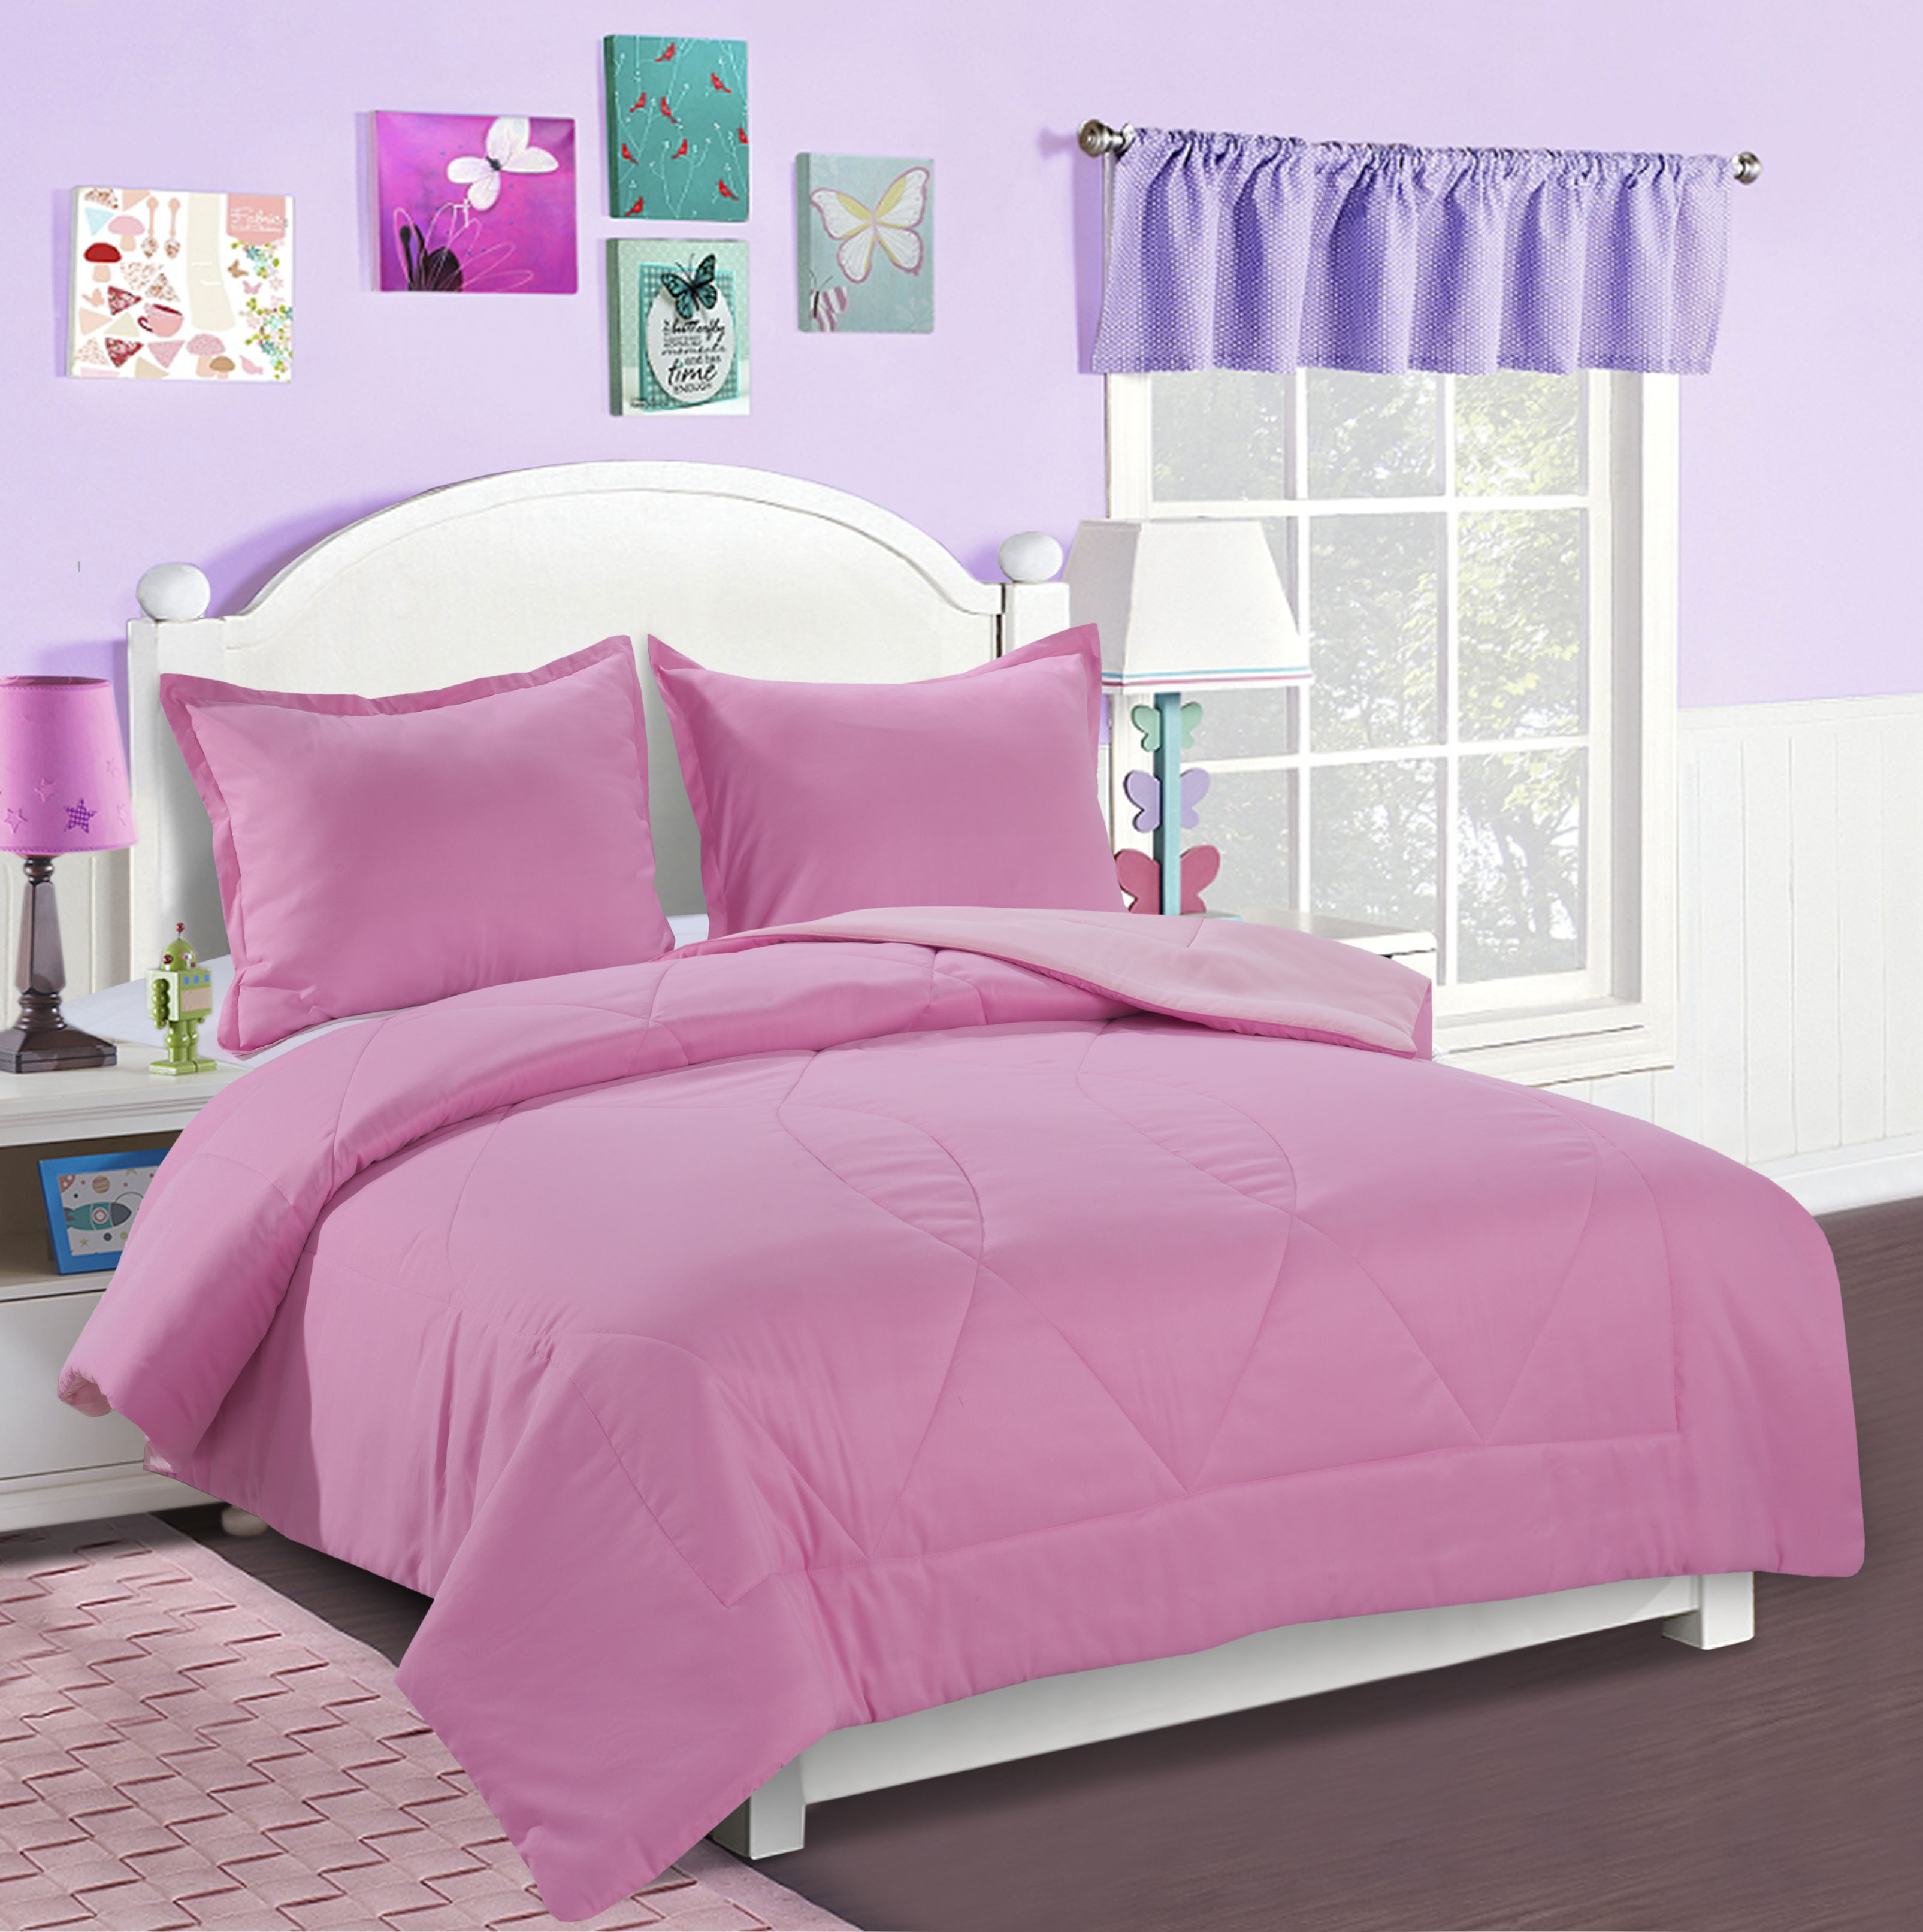 Mainstays Kids Solid Reversible Bedding Set